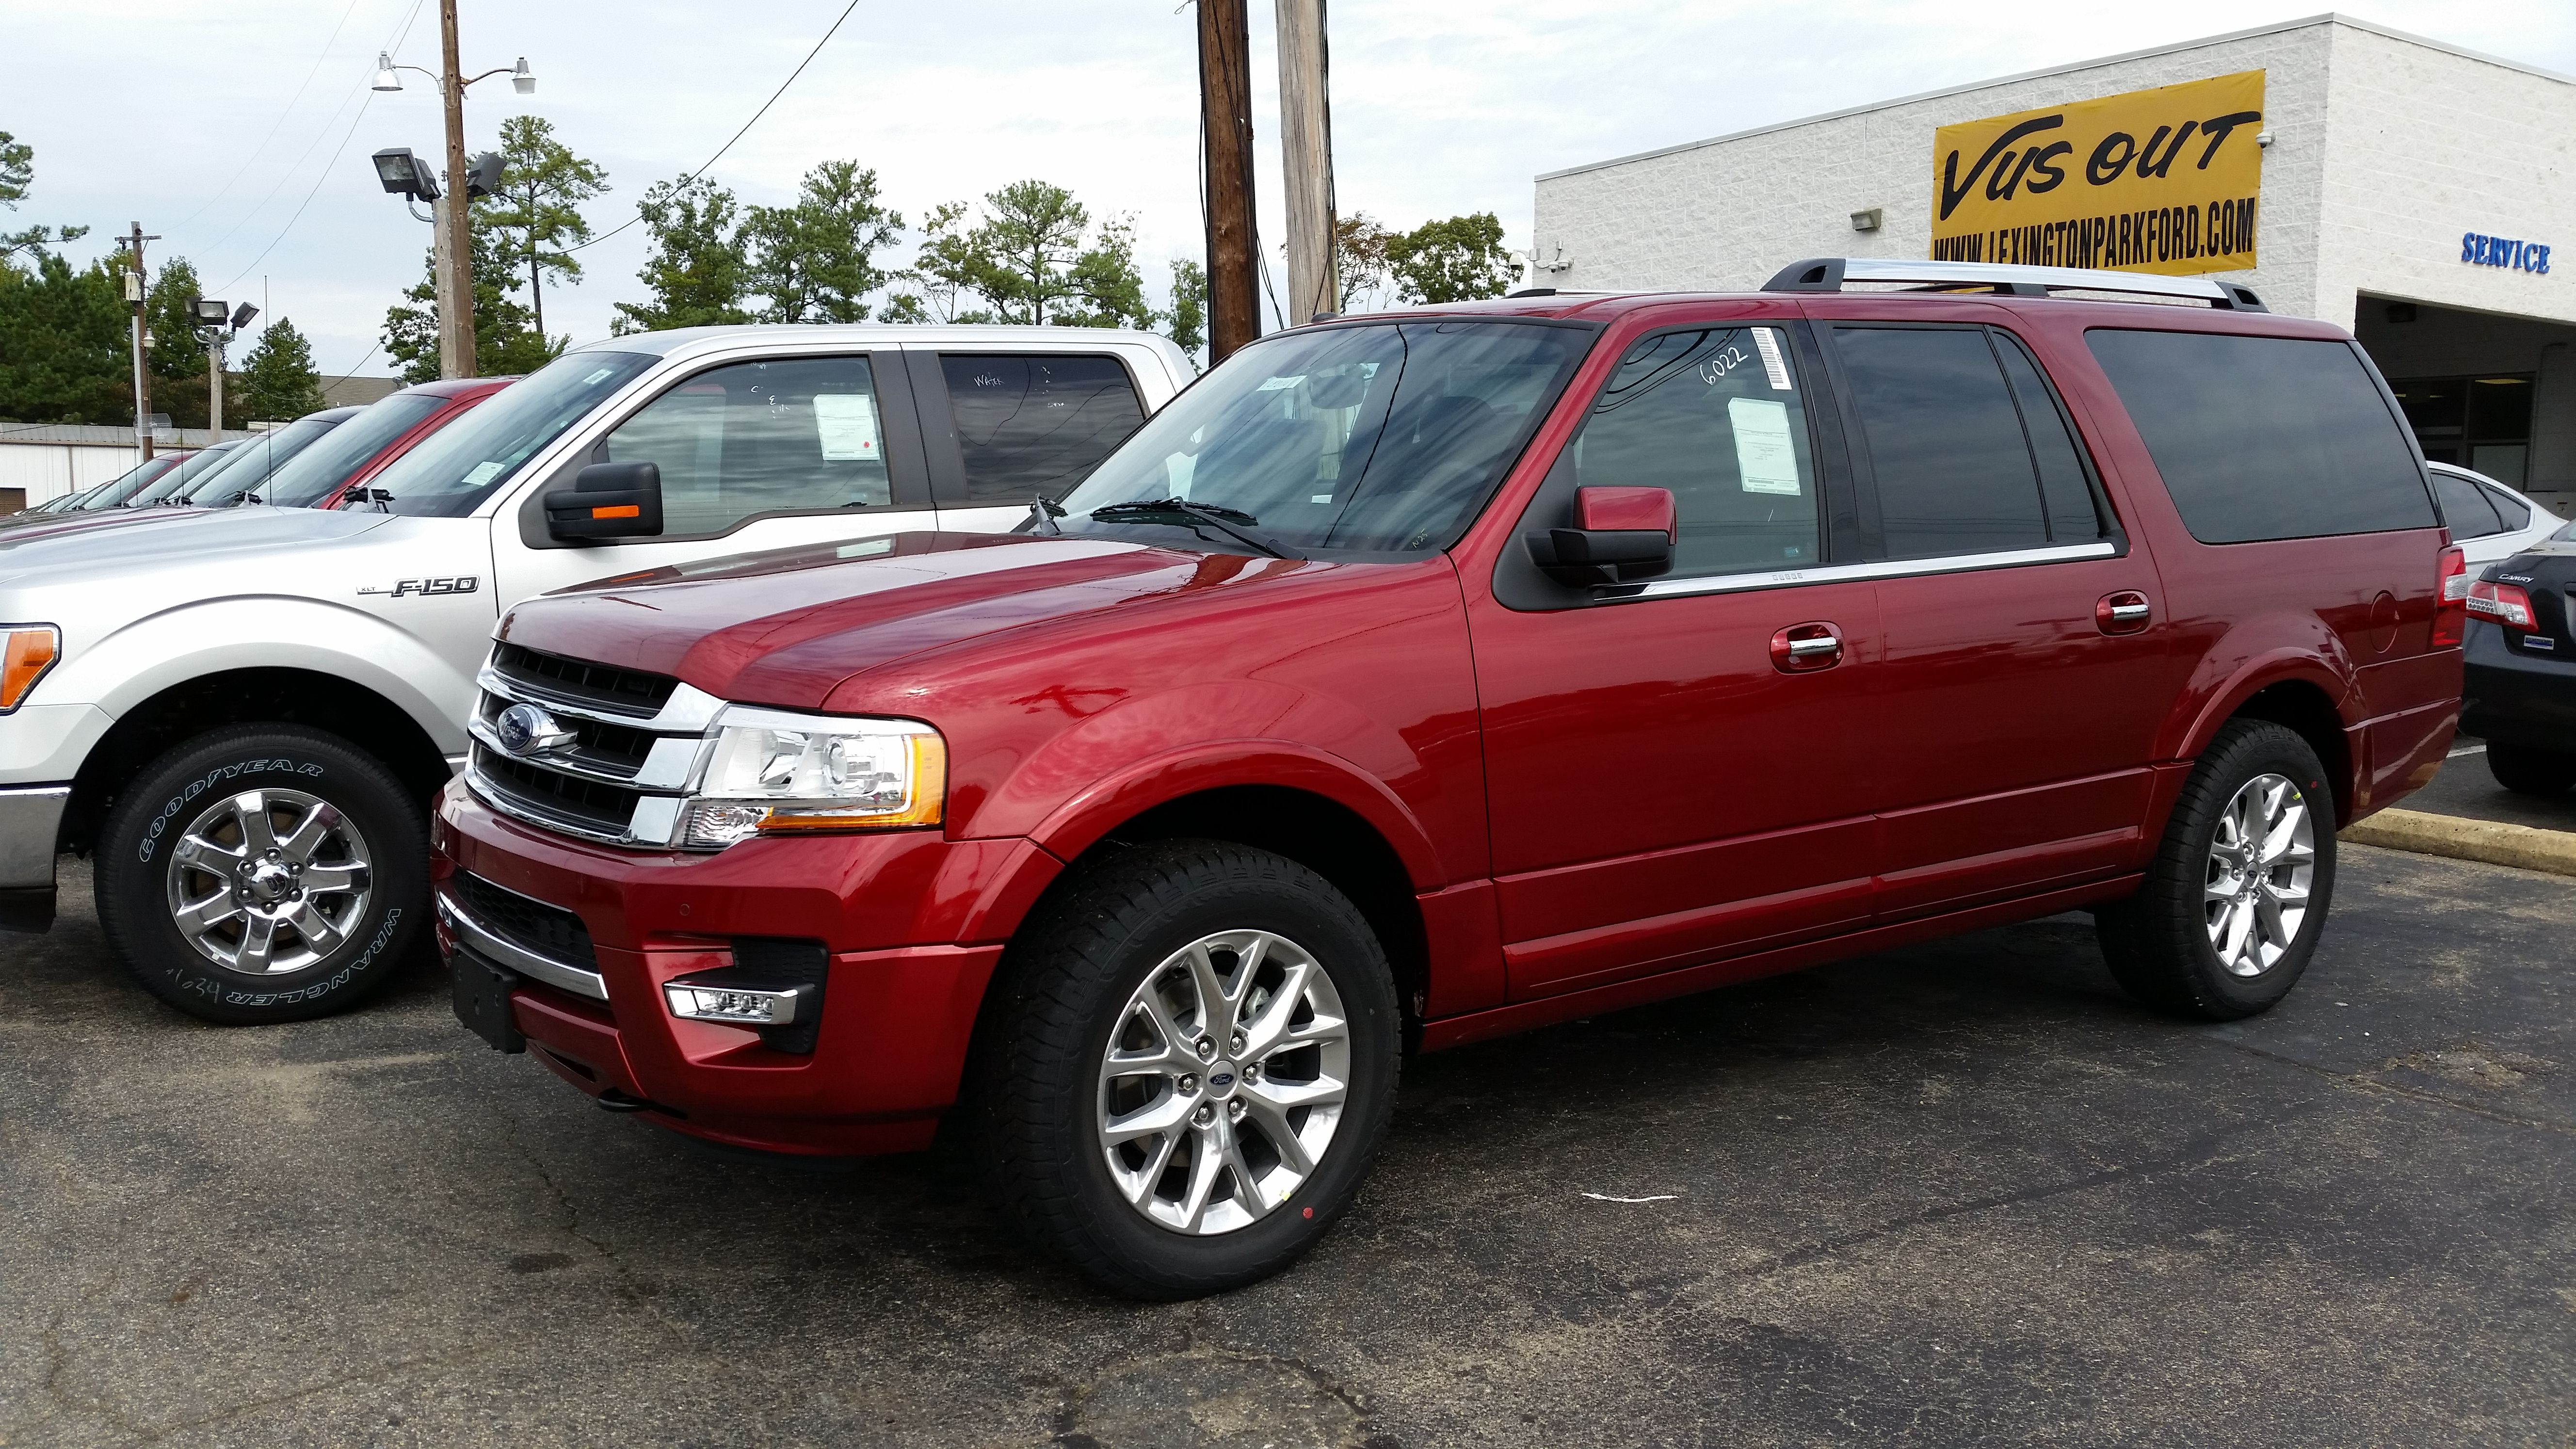 Wow Awesome Suv 2015 Limited 4wd Ford Expedition El With 3 5l